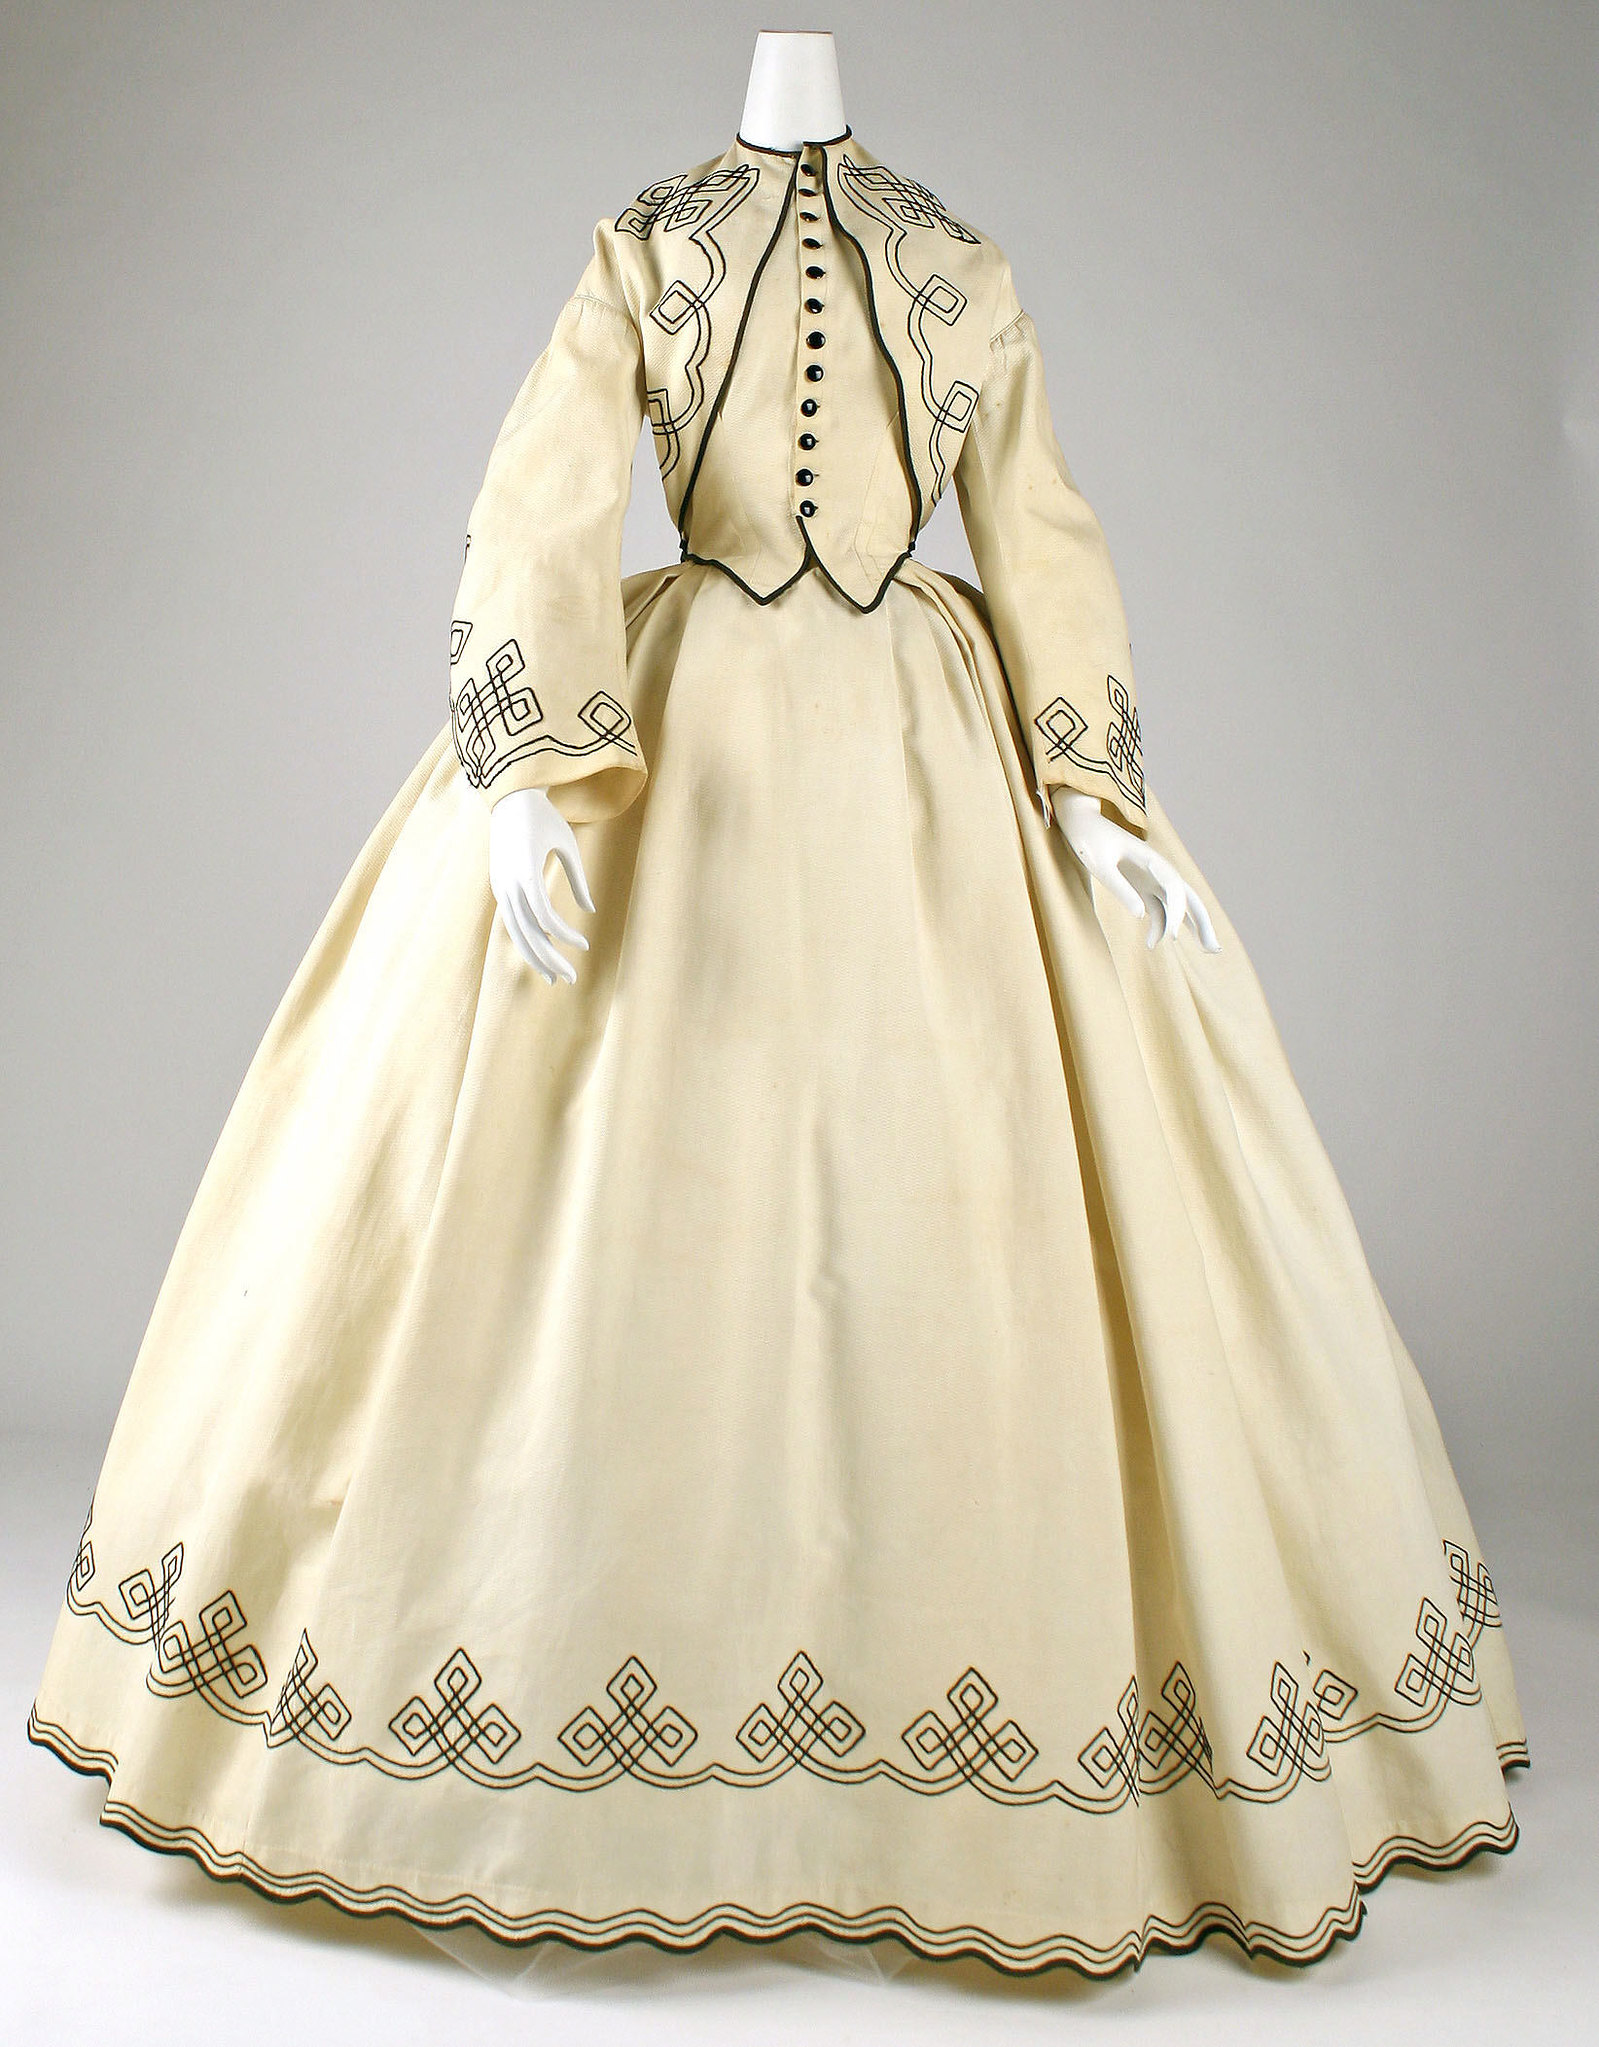 1860-64, American, cotton. metmuseum